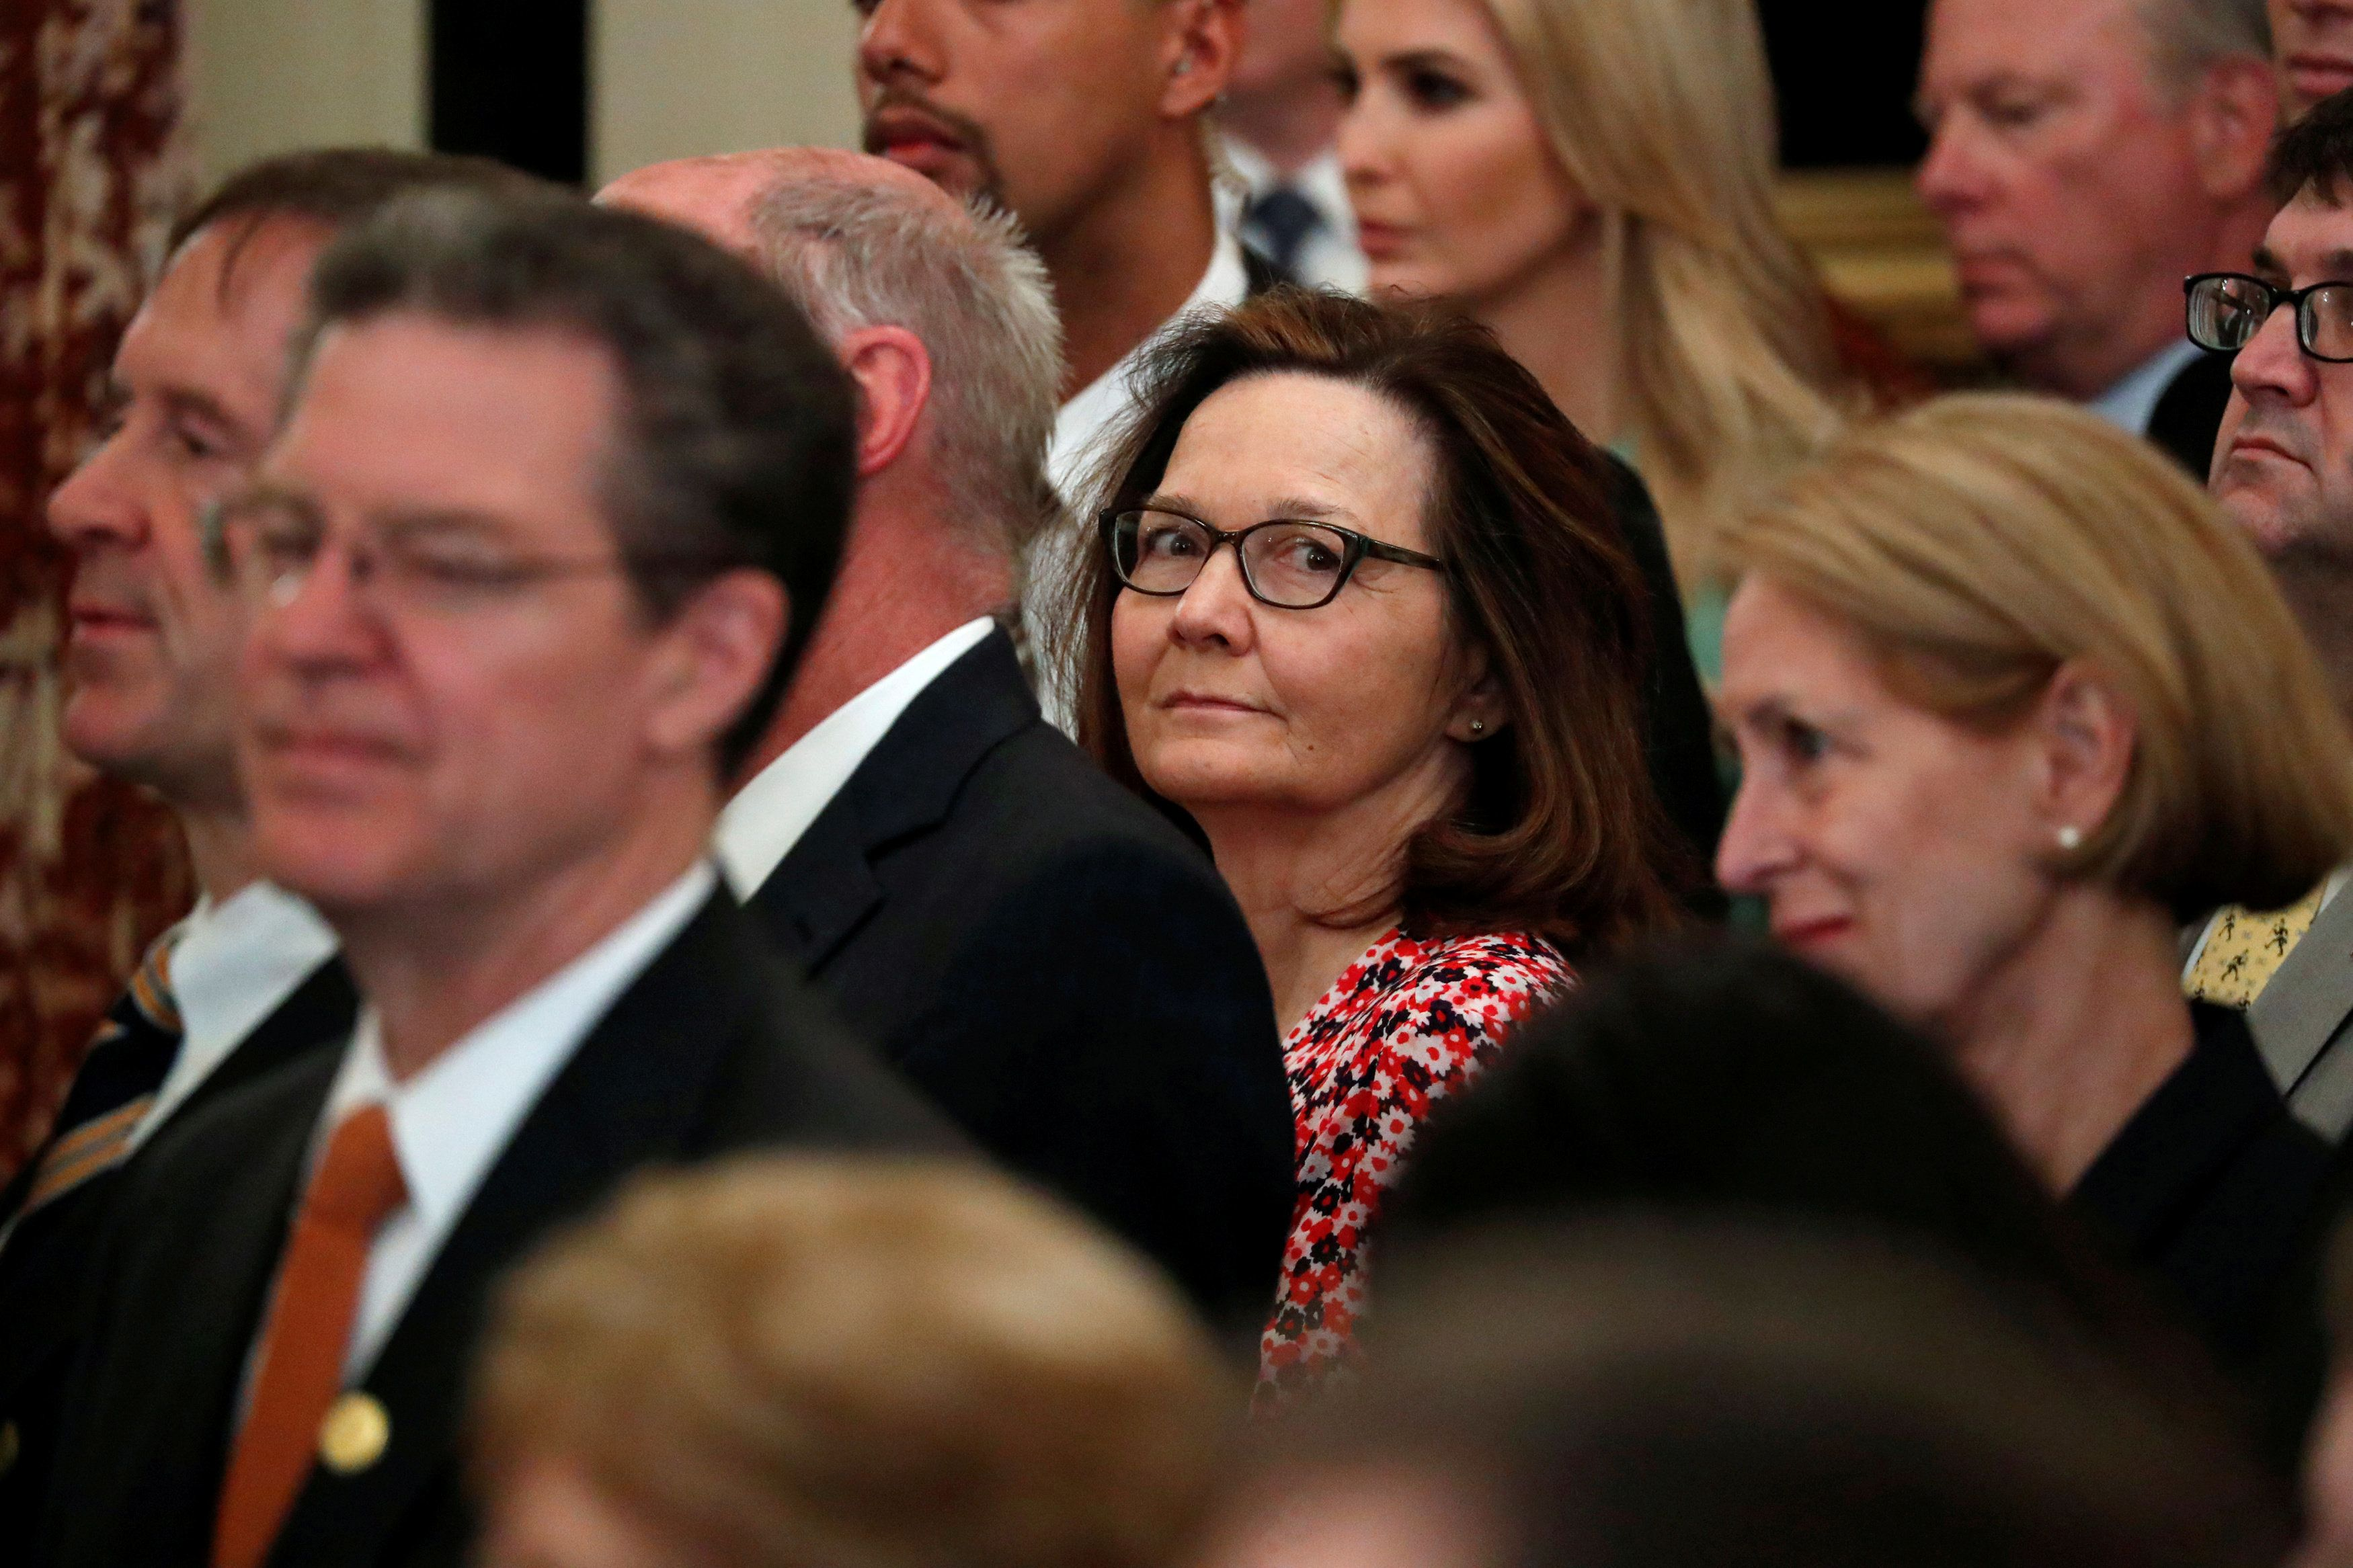 U.S. Central Intelligence Agency (CIA) director nominee Gina Haspel (C) attends Secretary of State Mike Pompeo's ceremonial swearing-in at the State Department in Washington, U.S. May 2, 2018.  REUTERS/Jonathan Ernst